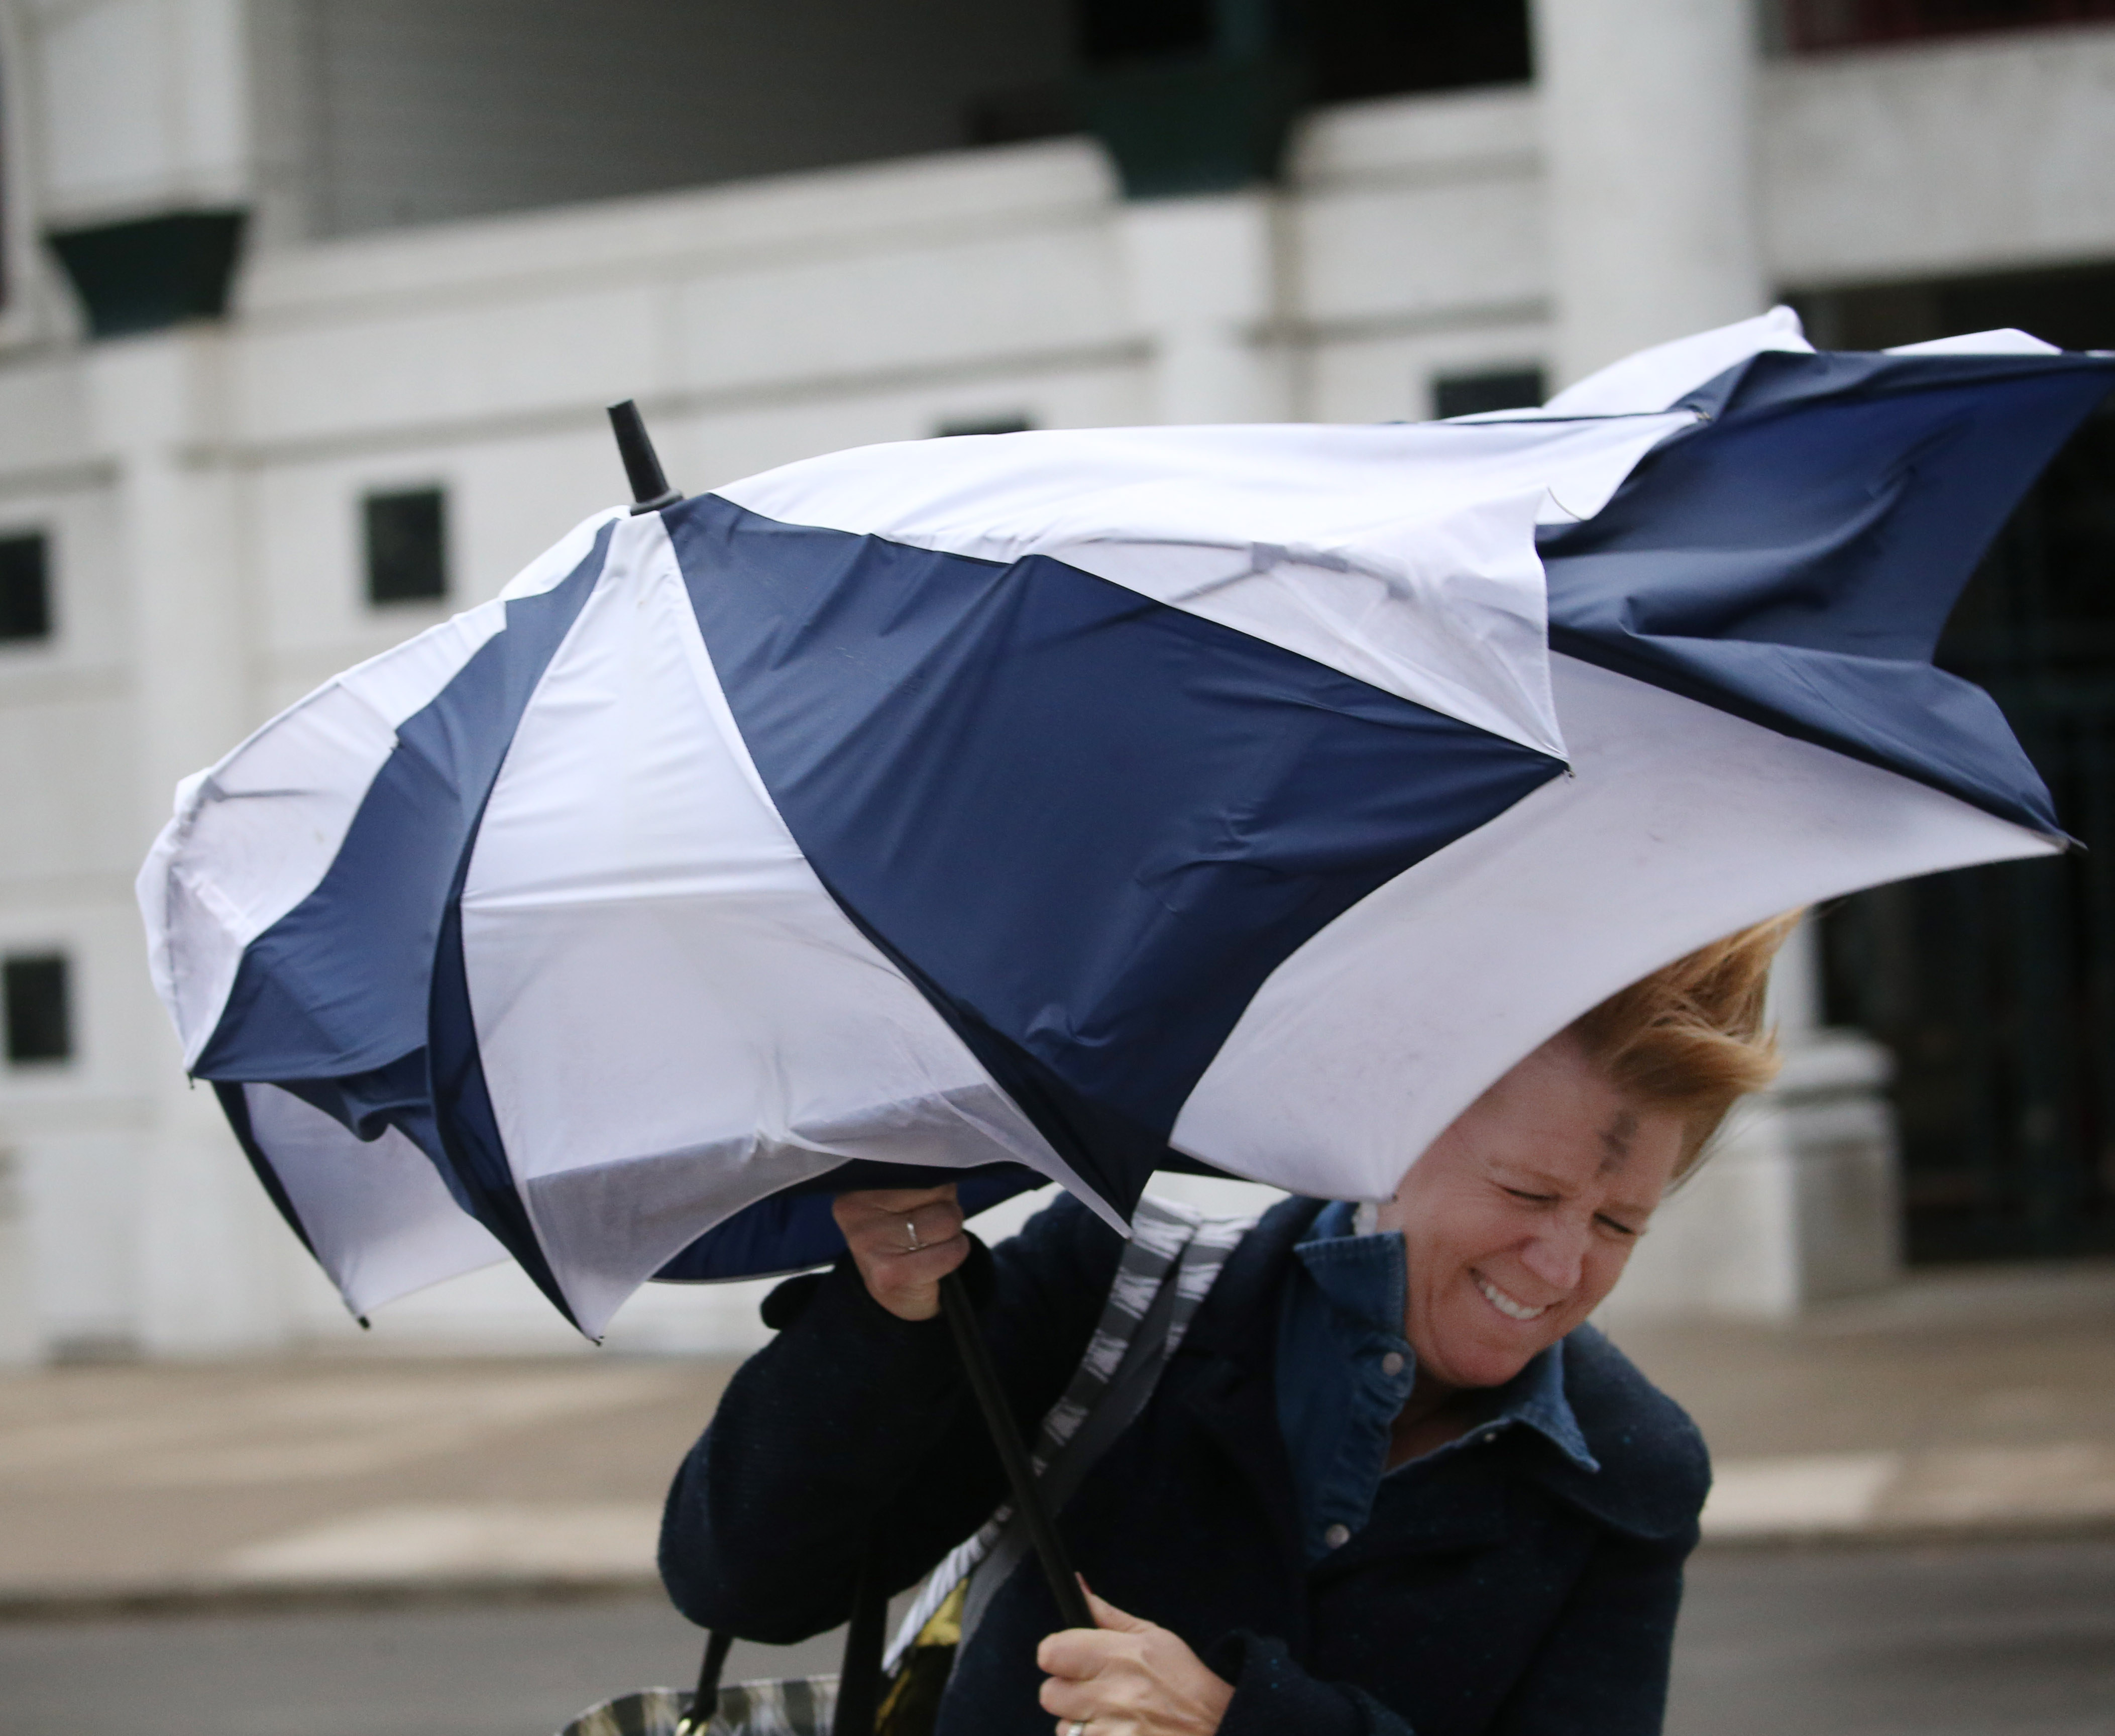 Karen Walkowiak's umbrella meets an early demise as she walks to her car after work on Washington Street in the late afternoon of March 1, 2017. (Sharon Cantillon/Buffalo News)